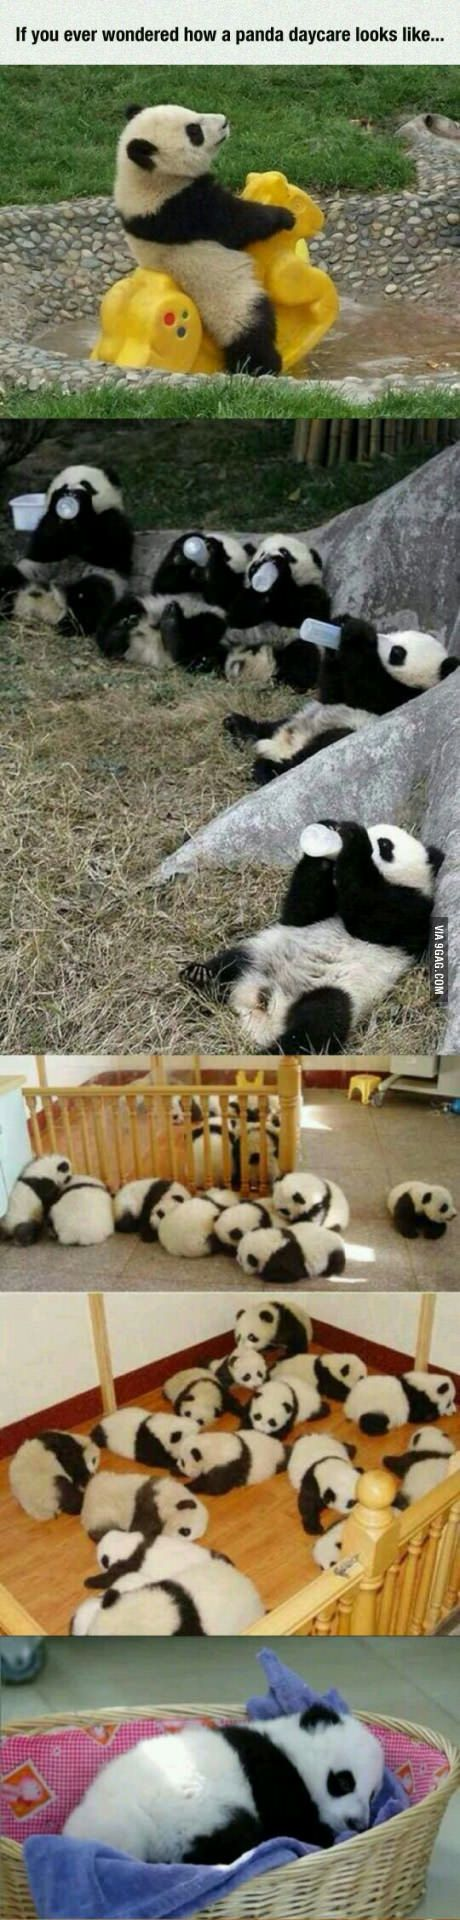 Panda daycare >>> I THINK I JUST FOUND MY DREAM JOB!!!                                                                                                                                                                                 More